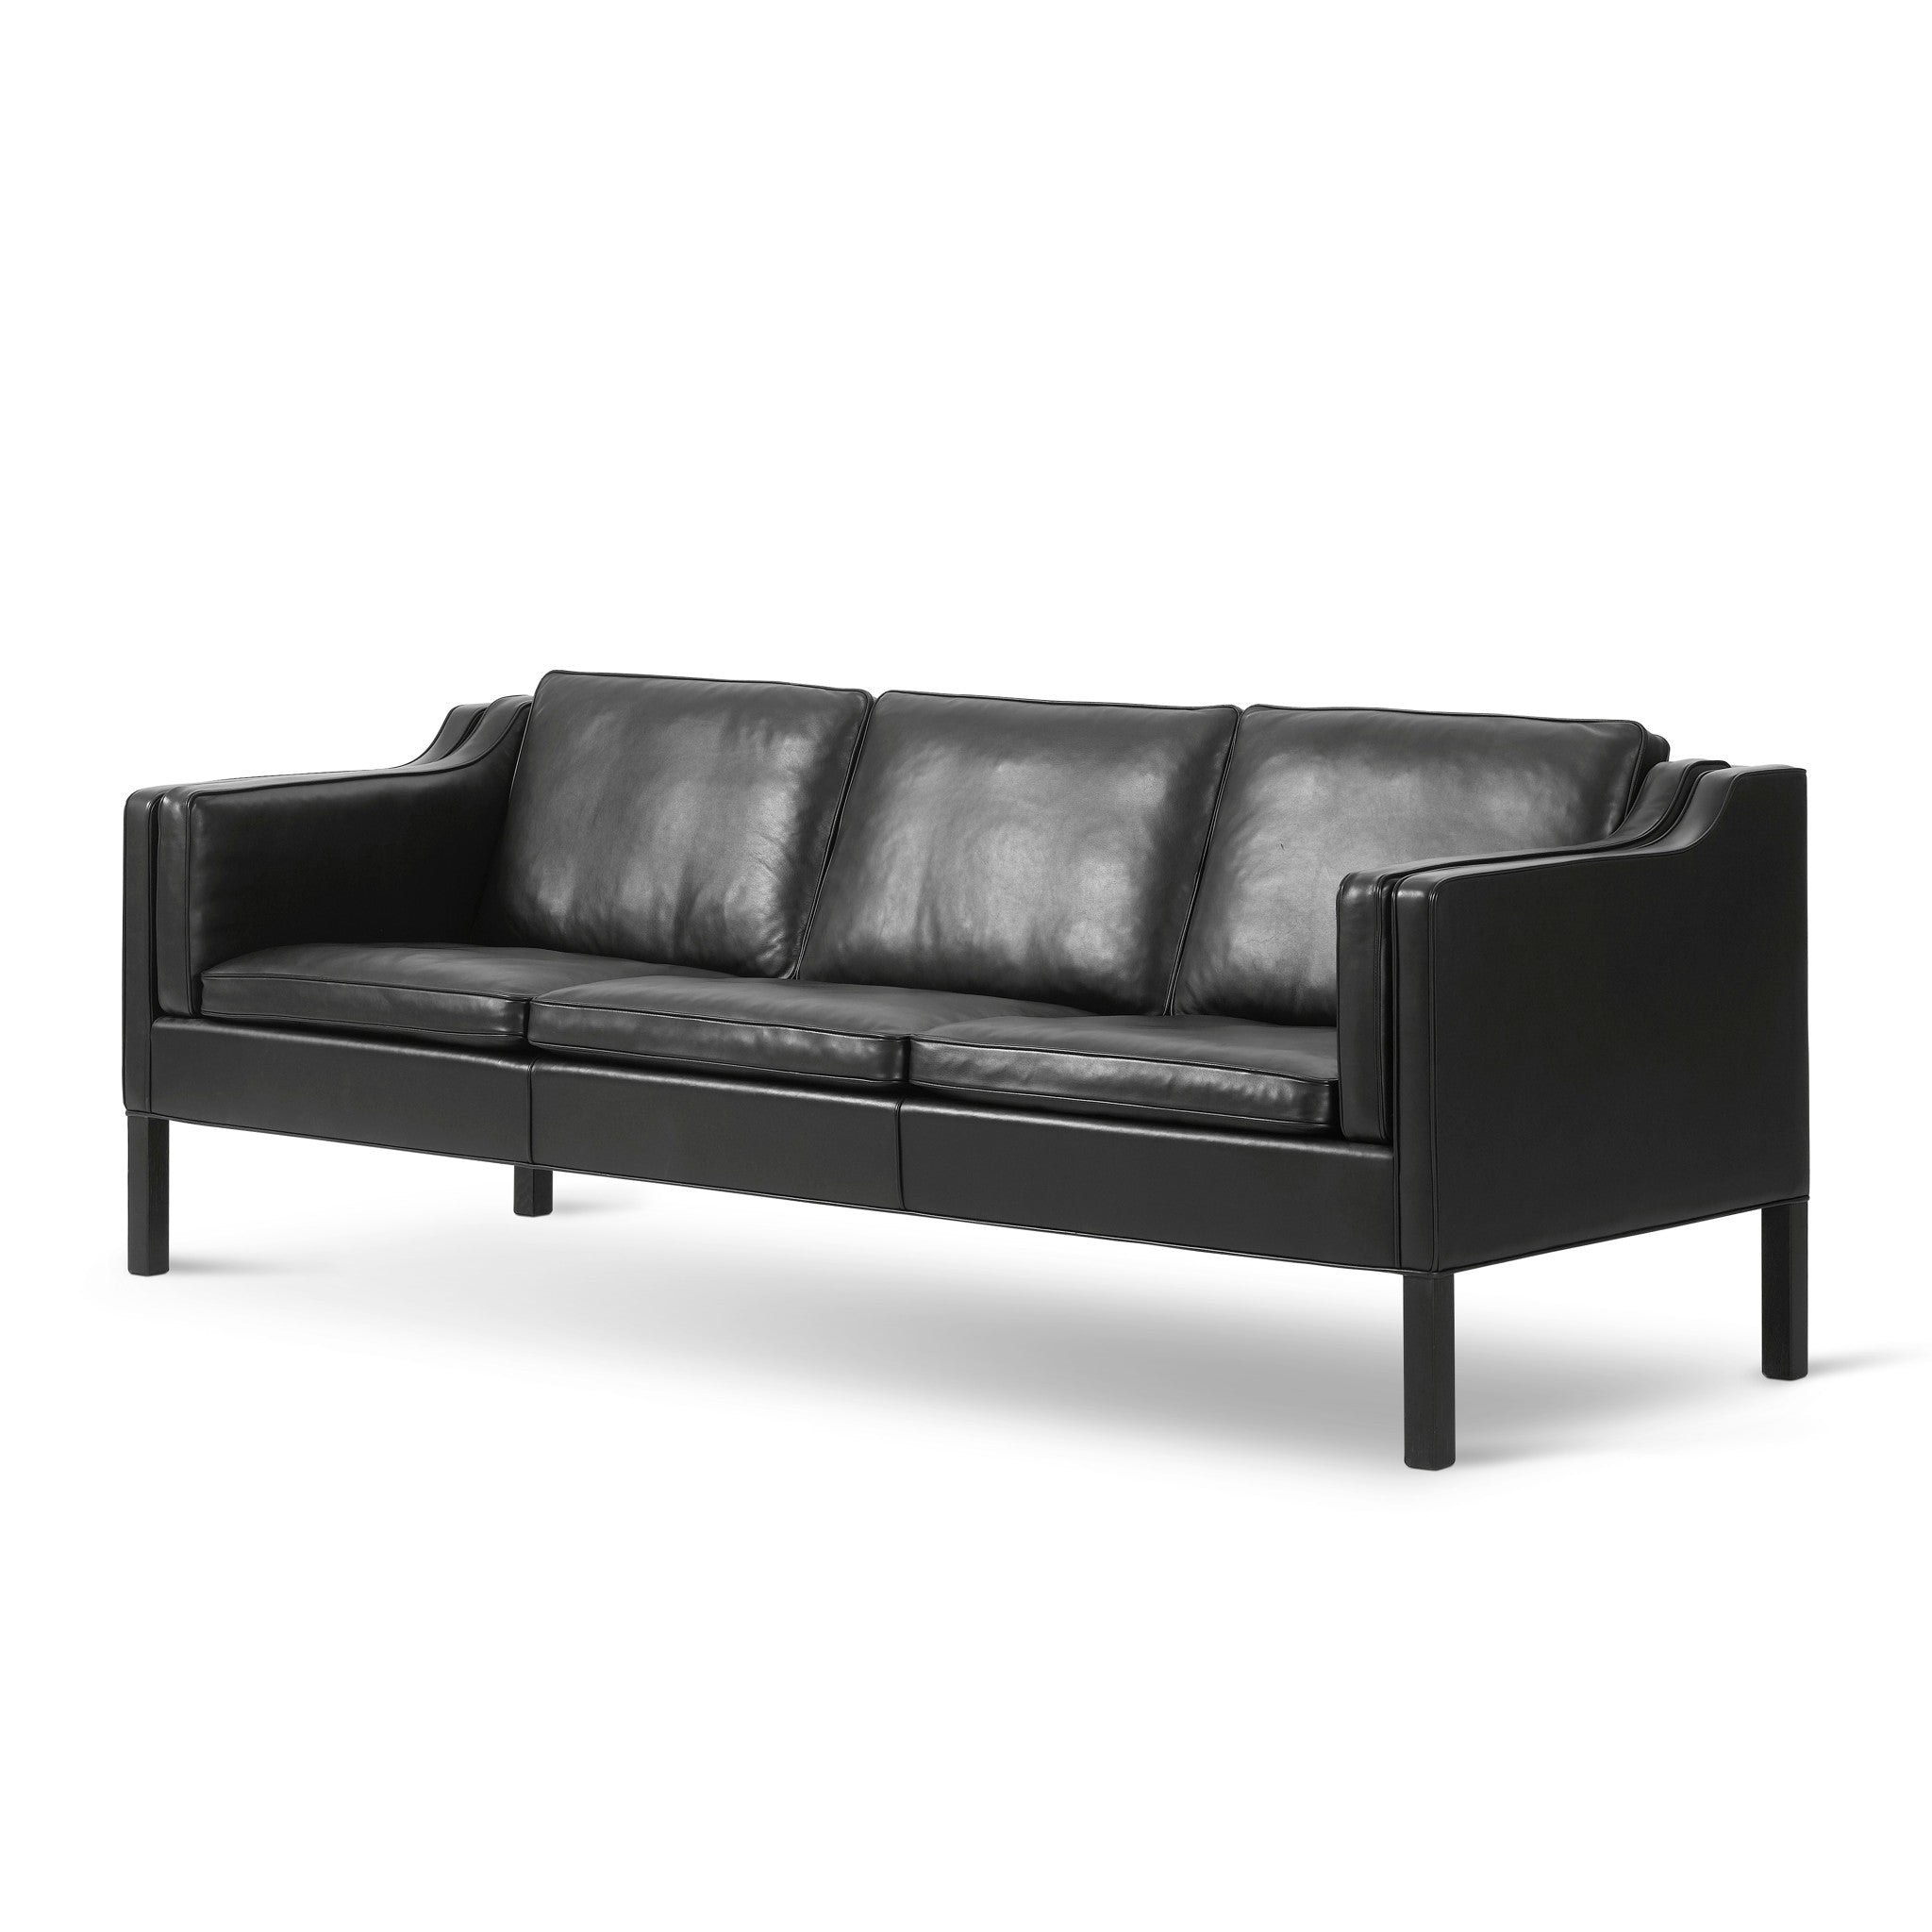 2213 Three-Seater Sofa by Fredericia